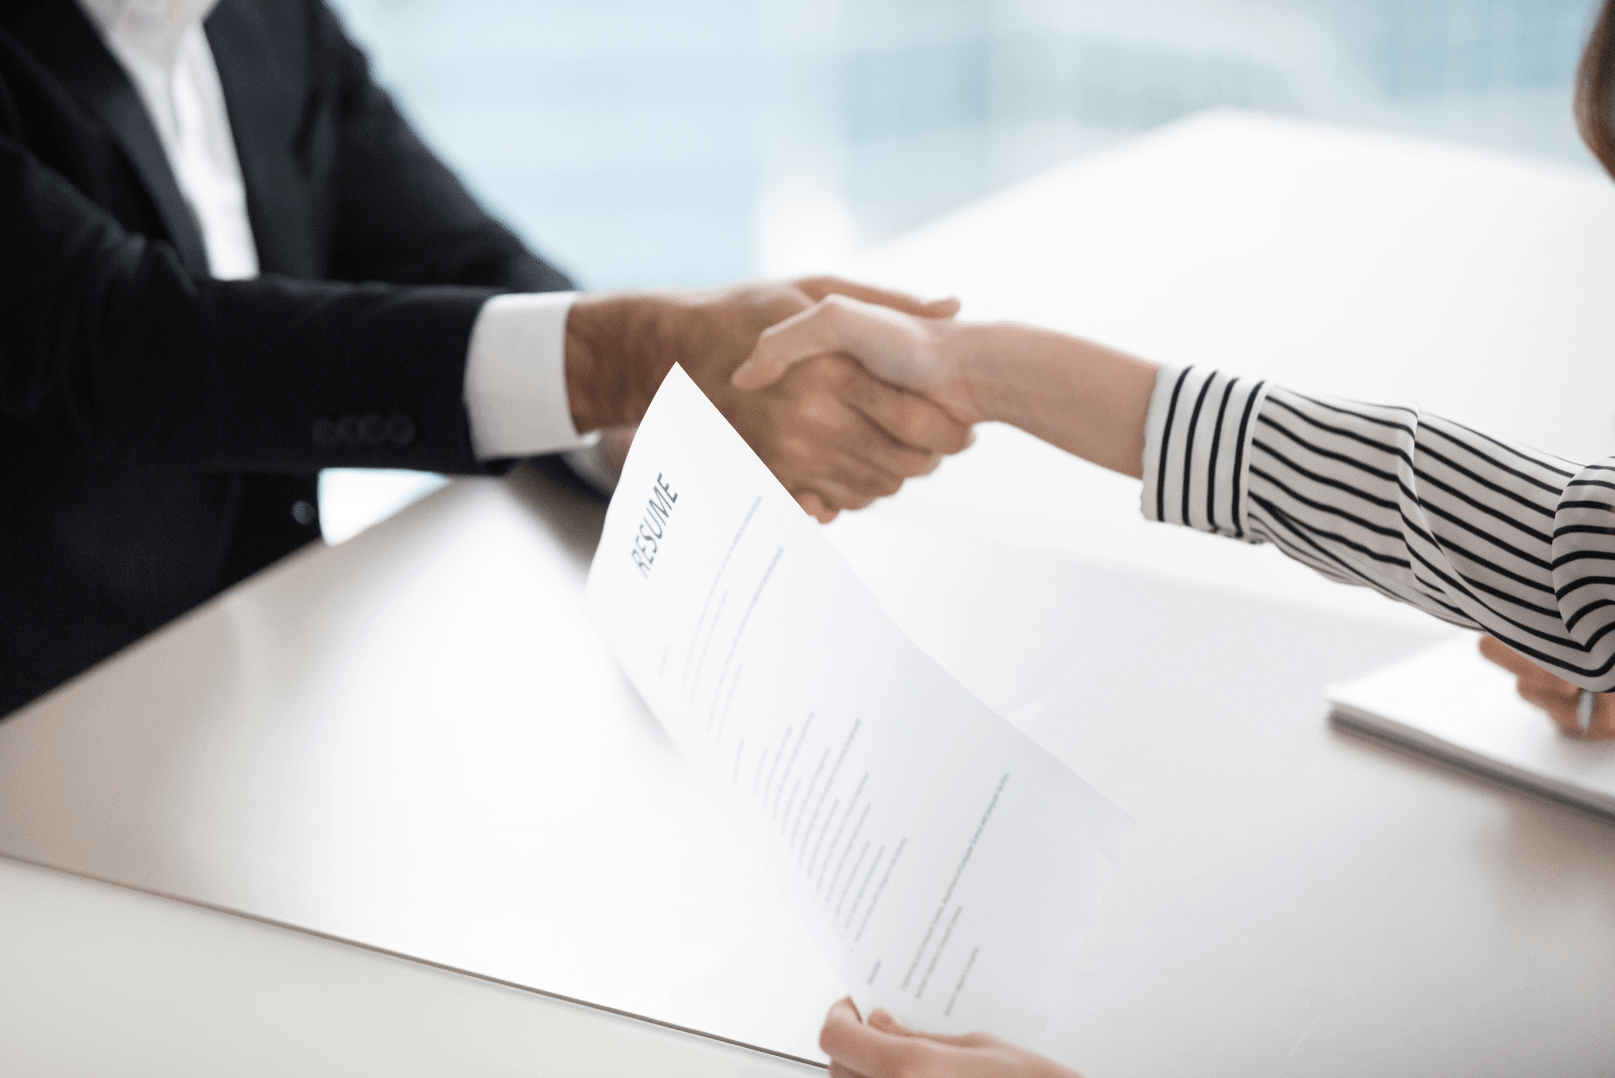 Talent acquisition in the UAE